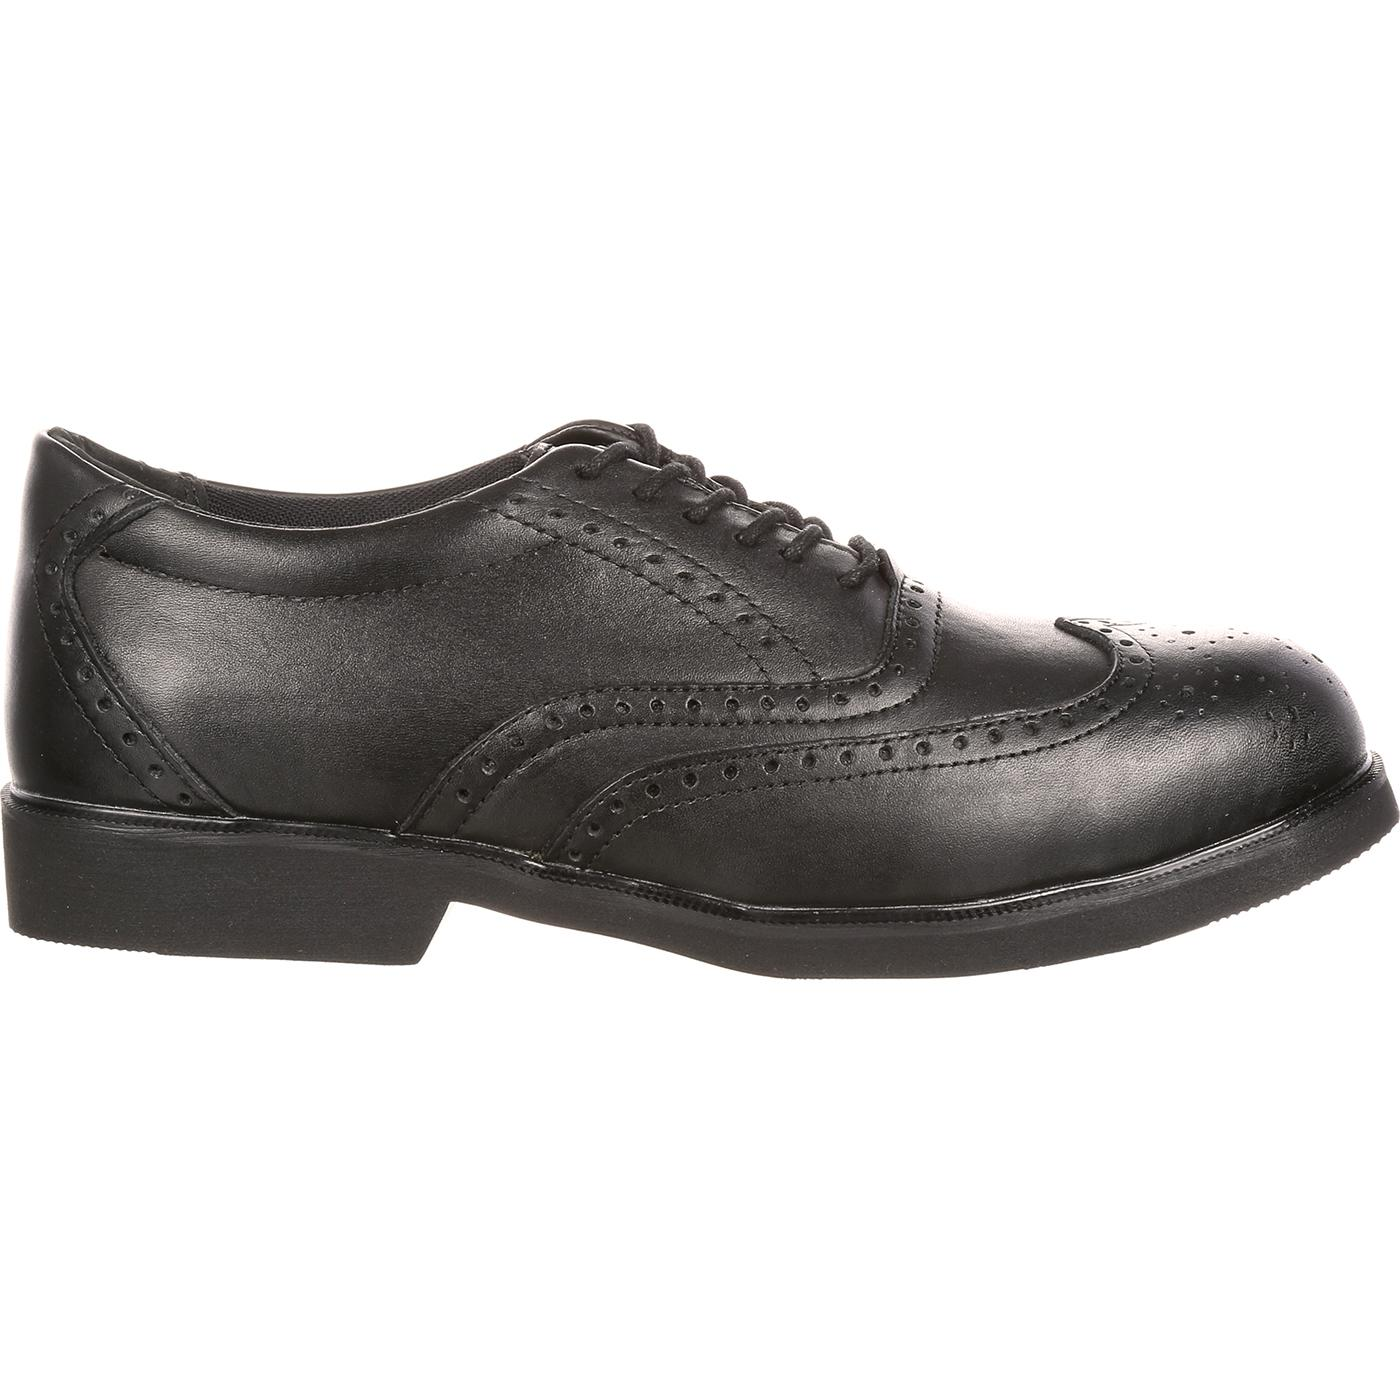 Rockport Rk Steel Toe Dress Wingtip Safety Shoes